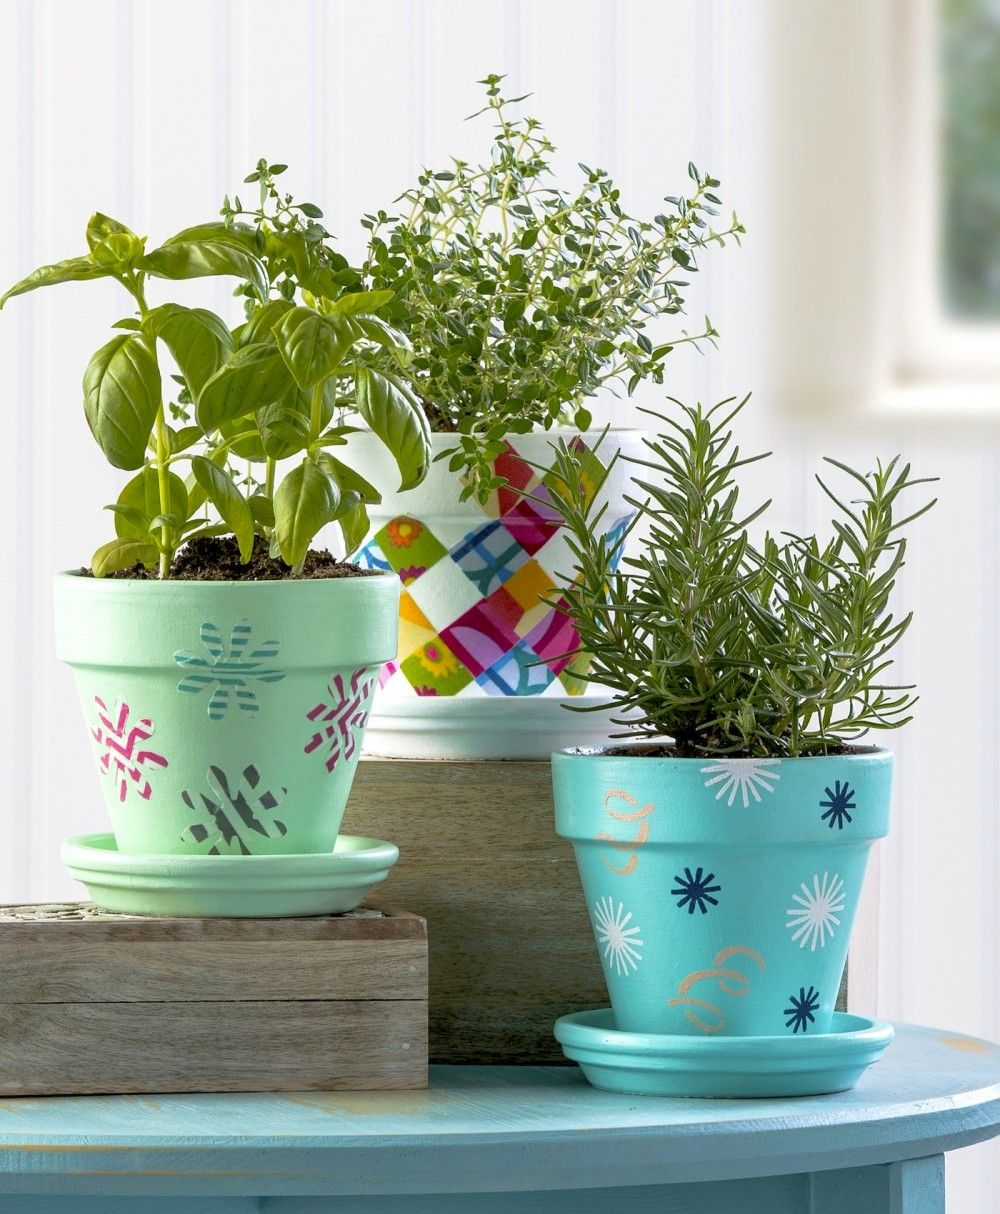 Captivating How To Decorate Clay Pots For An Herb Garden (Mod Podge Rocks!)